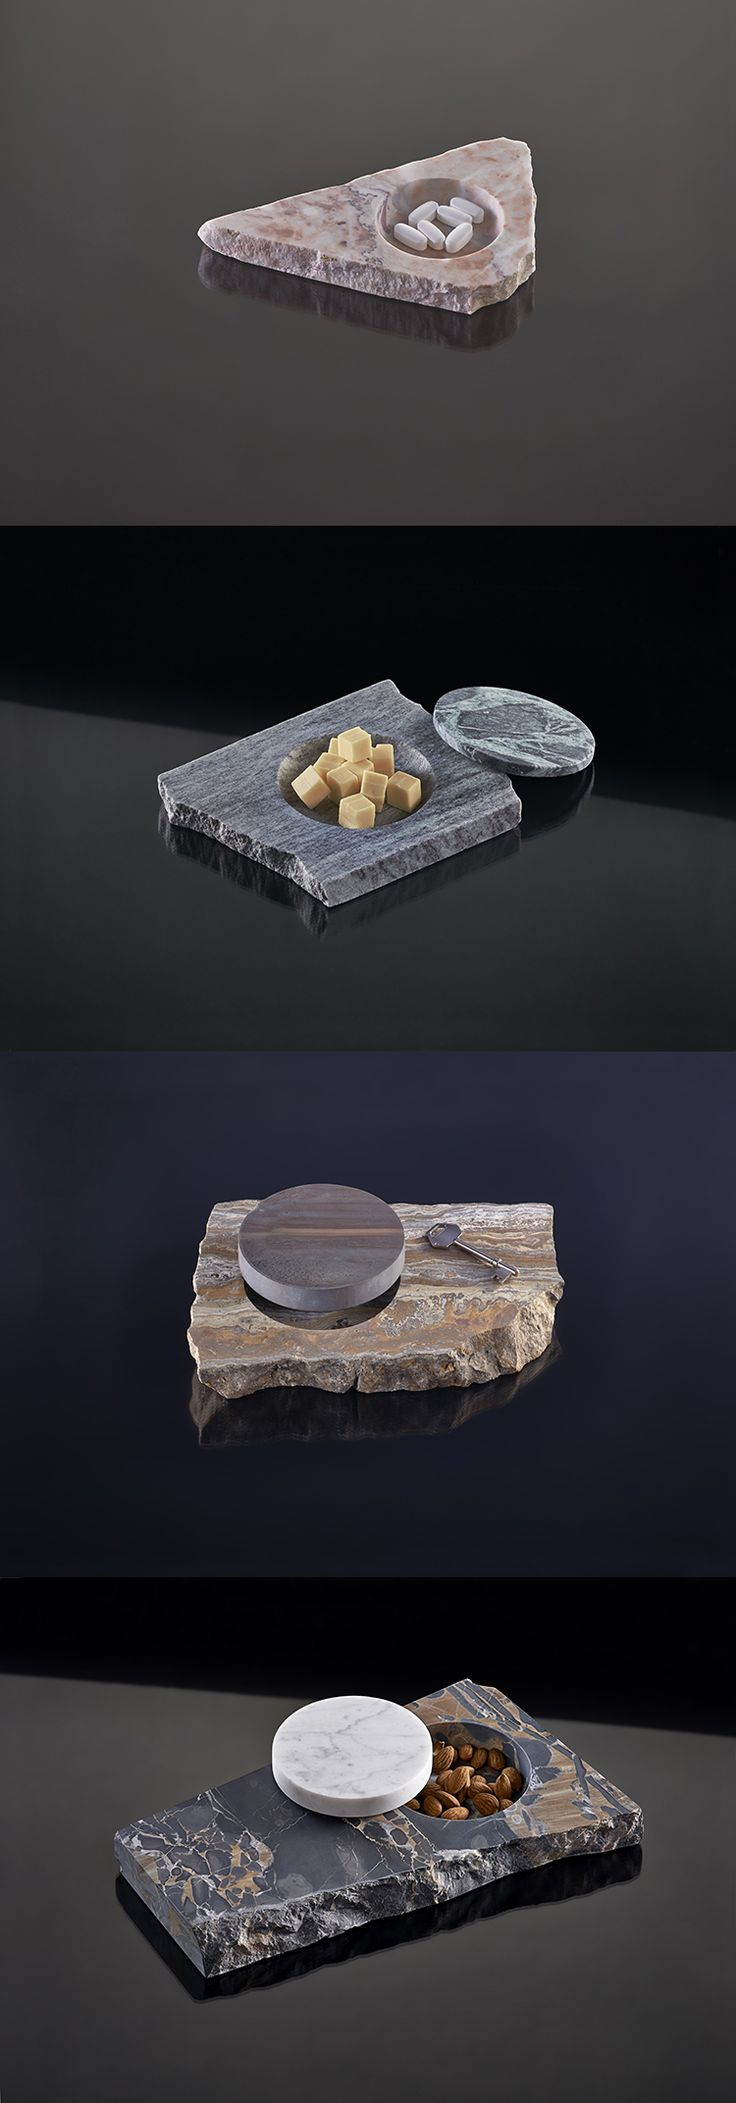 Designer Makes Gorgeous Tableware From Scrap Stone And Wood